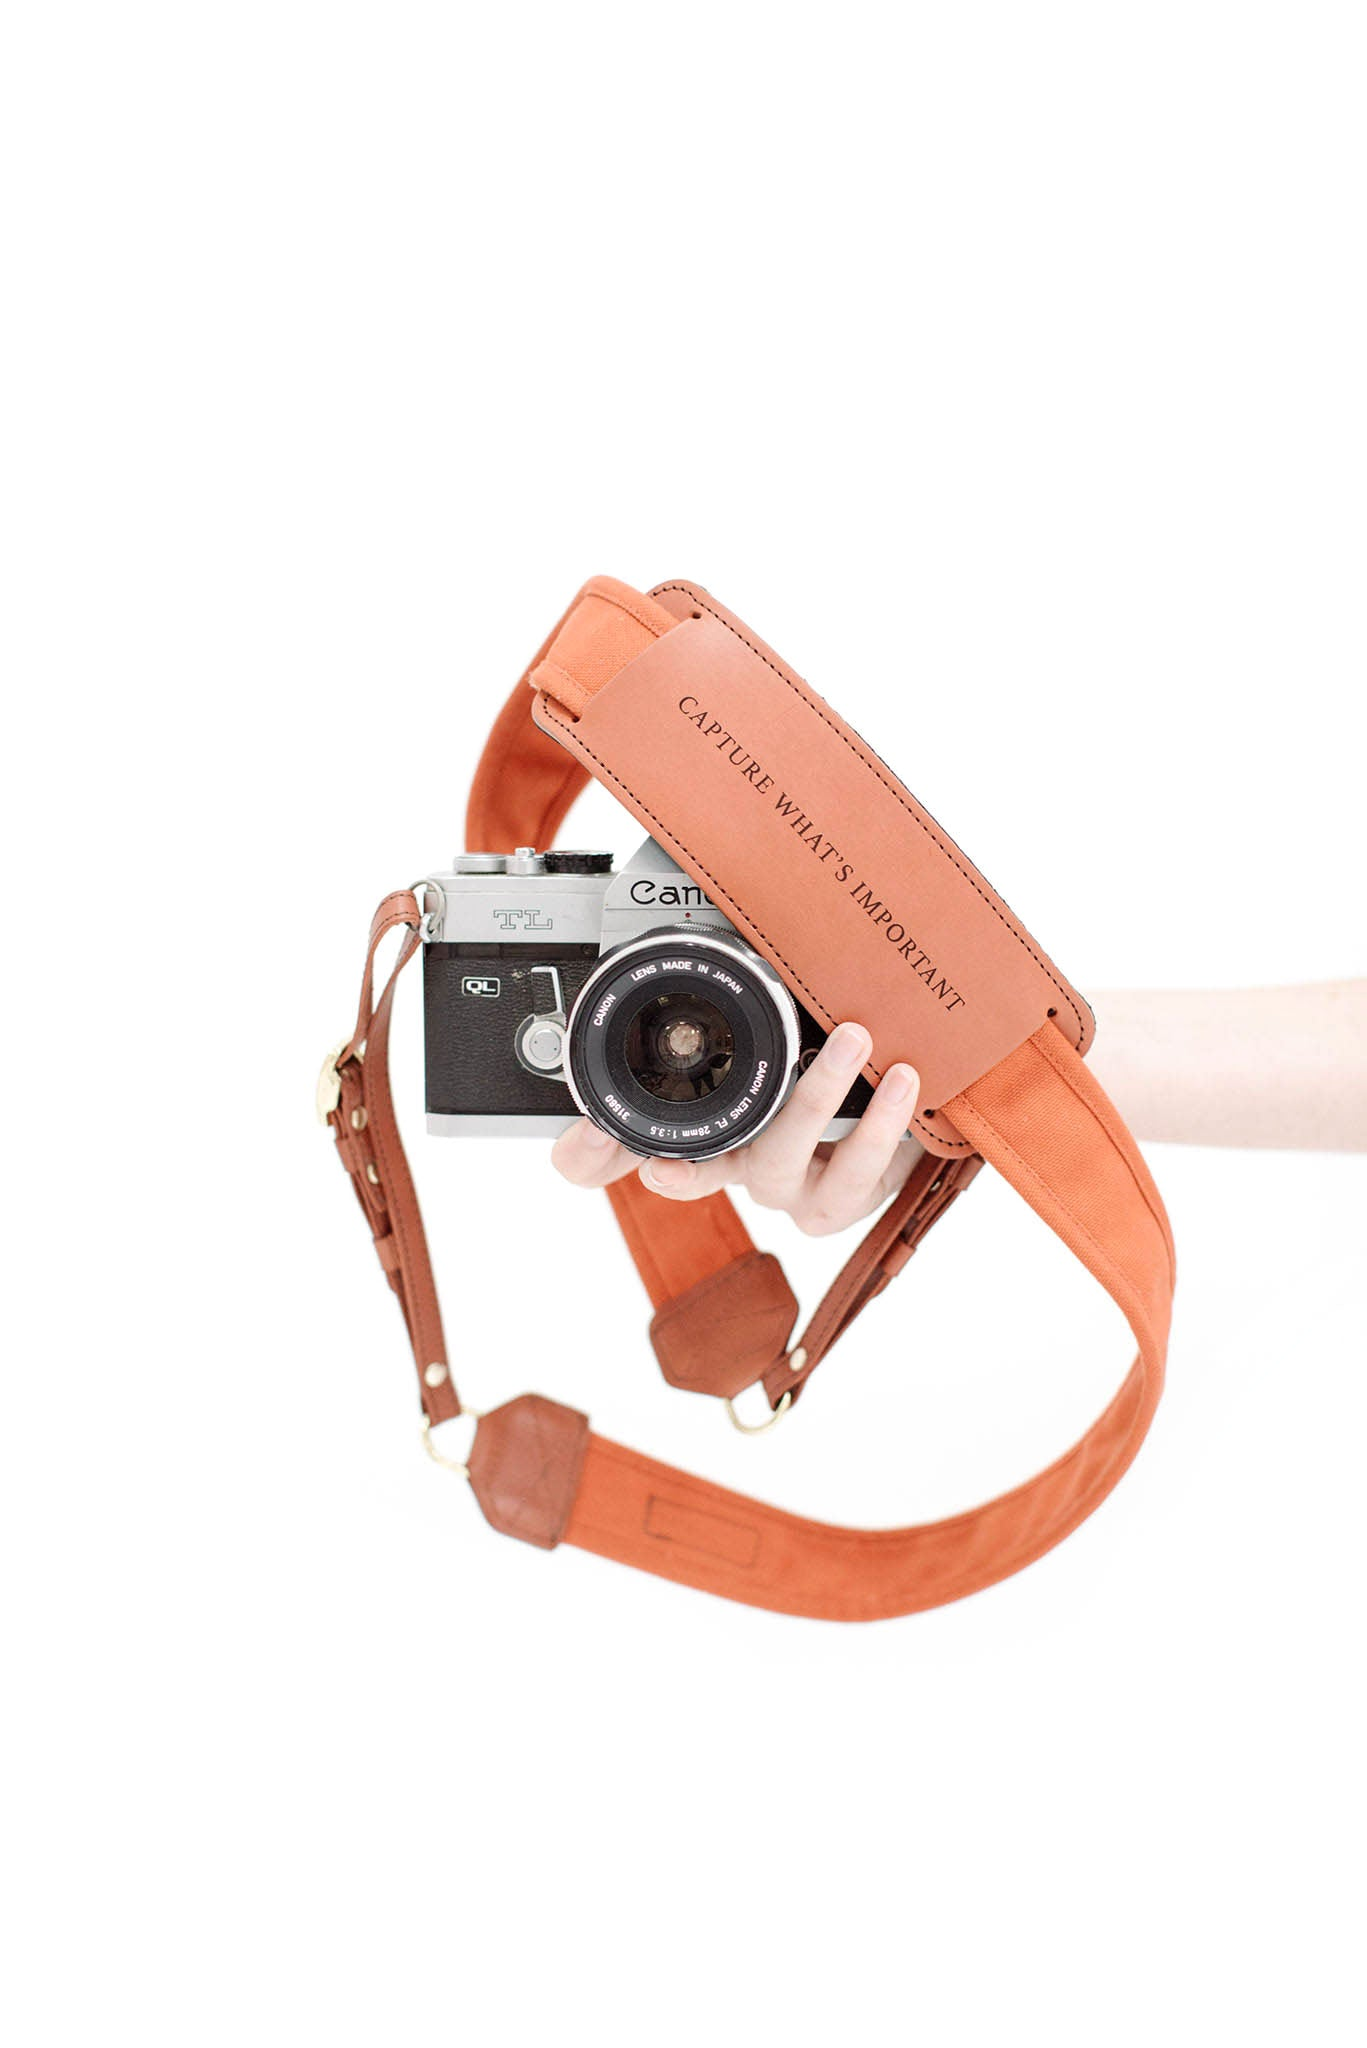 FOTO | Sweet Potato Fotostrap - a burnt orange canvas and genuine leather camera strap that can be personalized with a monogram or business logo, making it the perfect personalized gift!